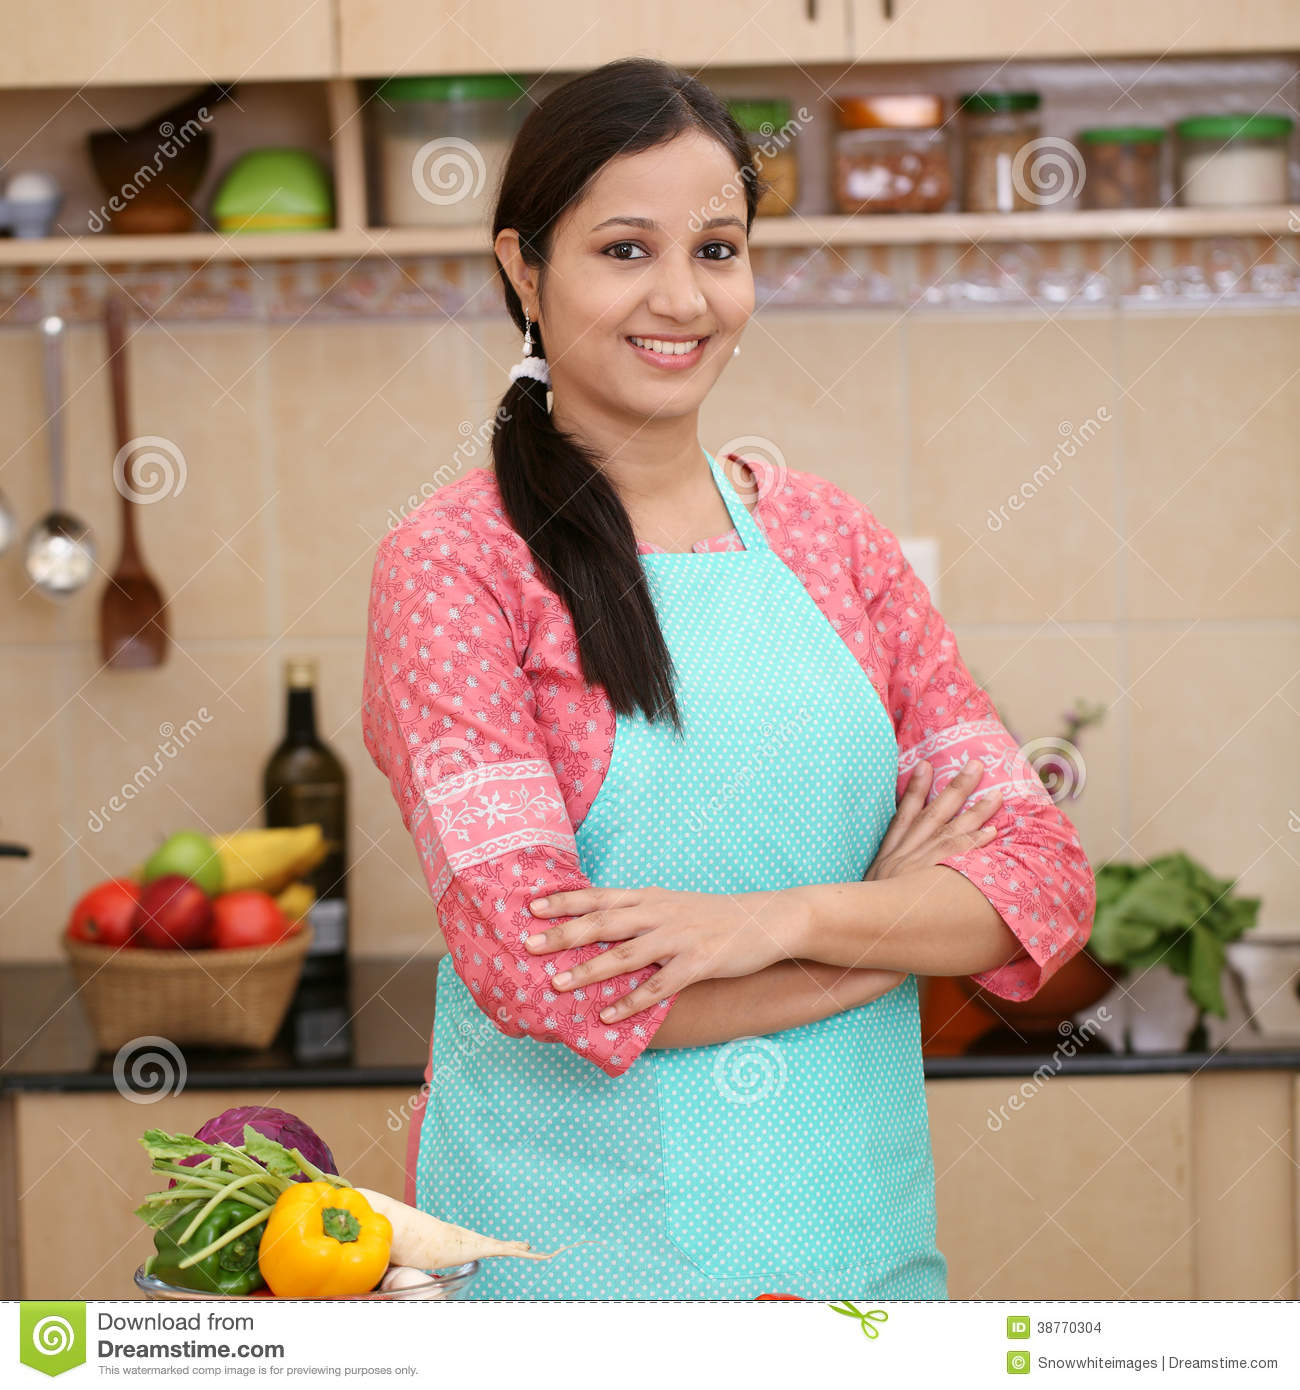 Women Kitchen: Young Indian Woman With Kitchen Apron Stock Images